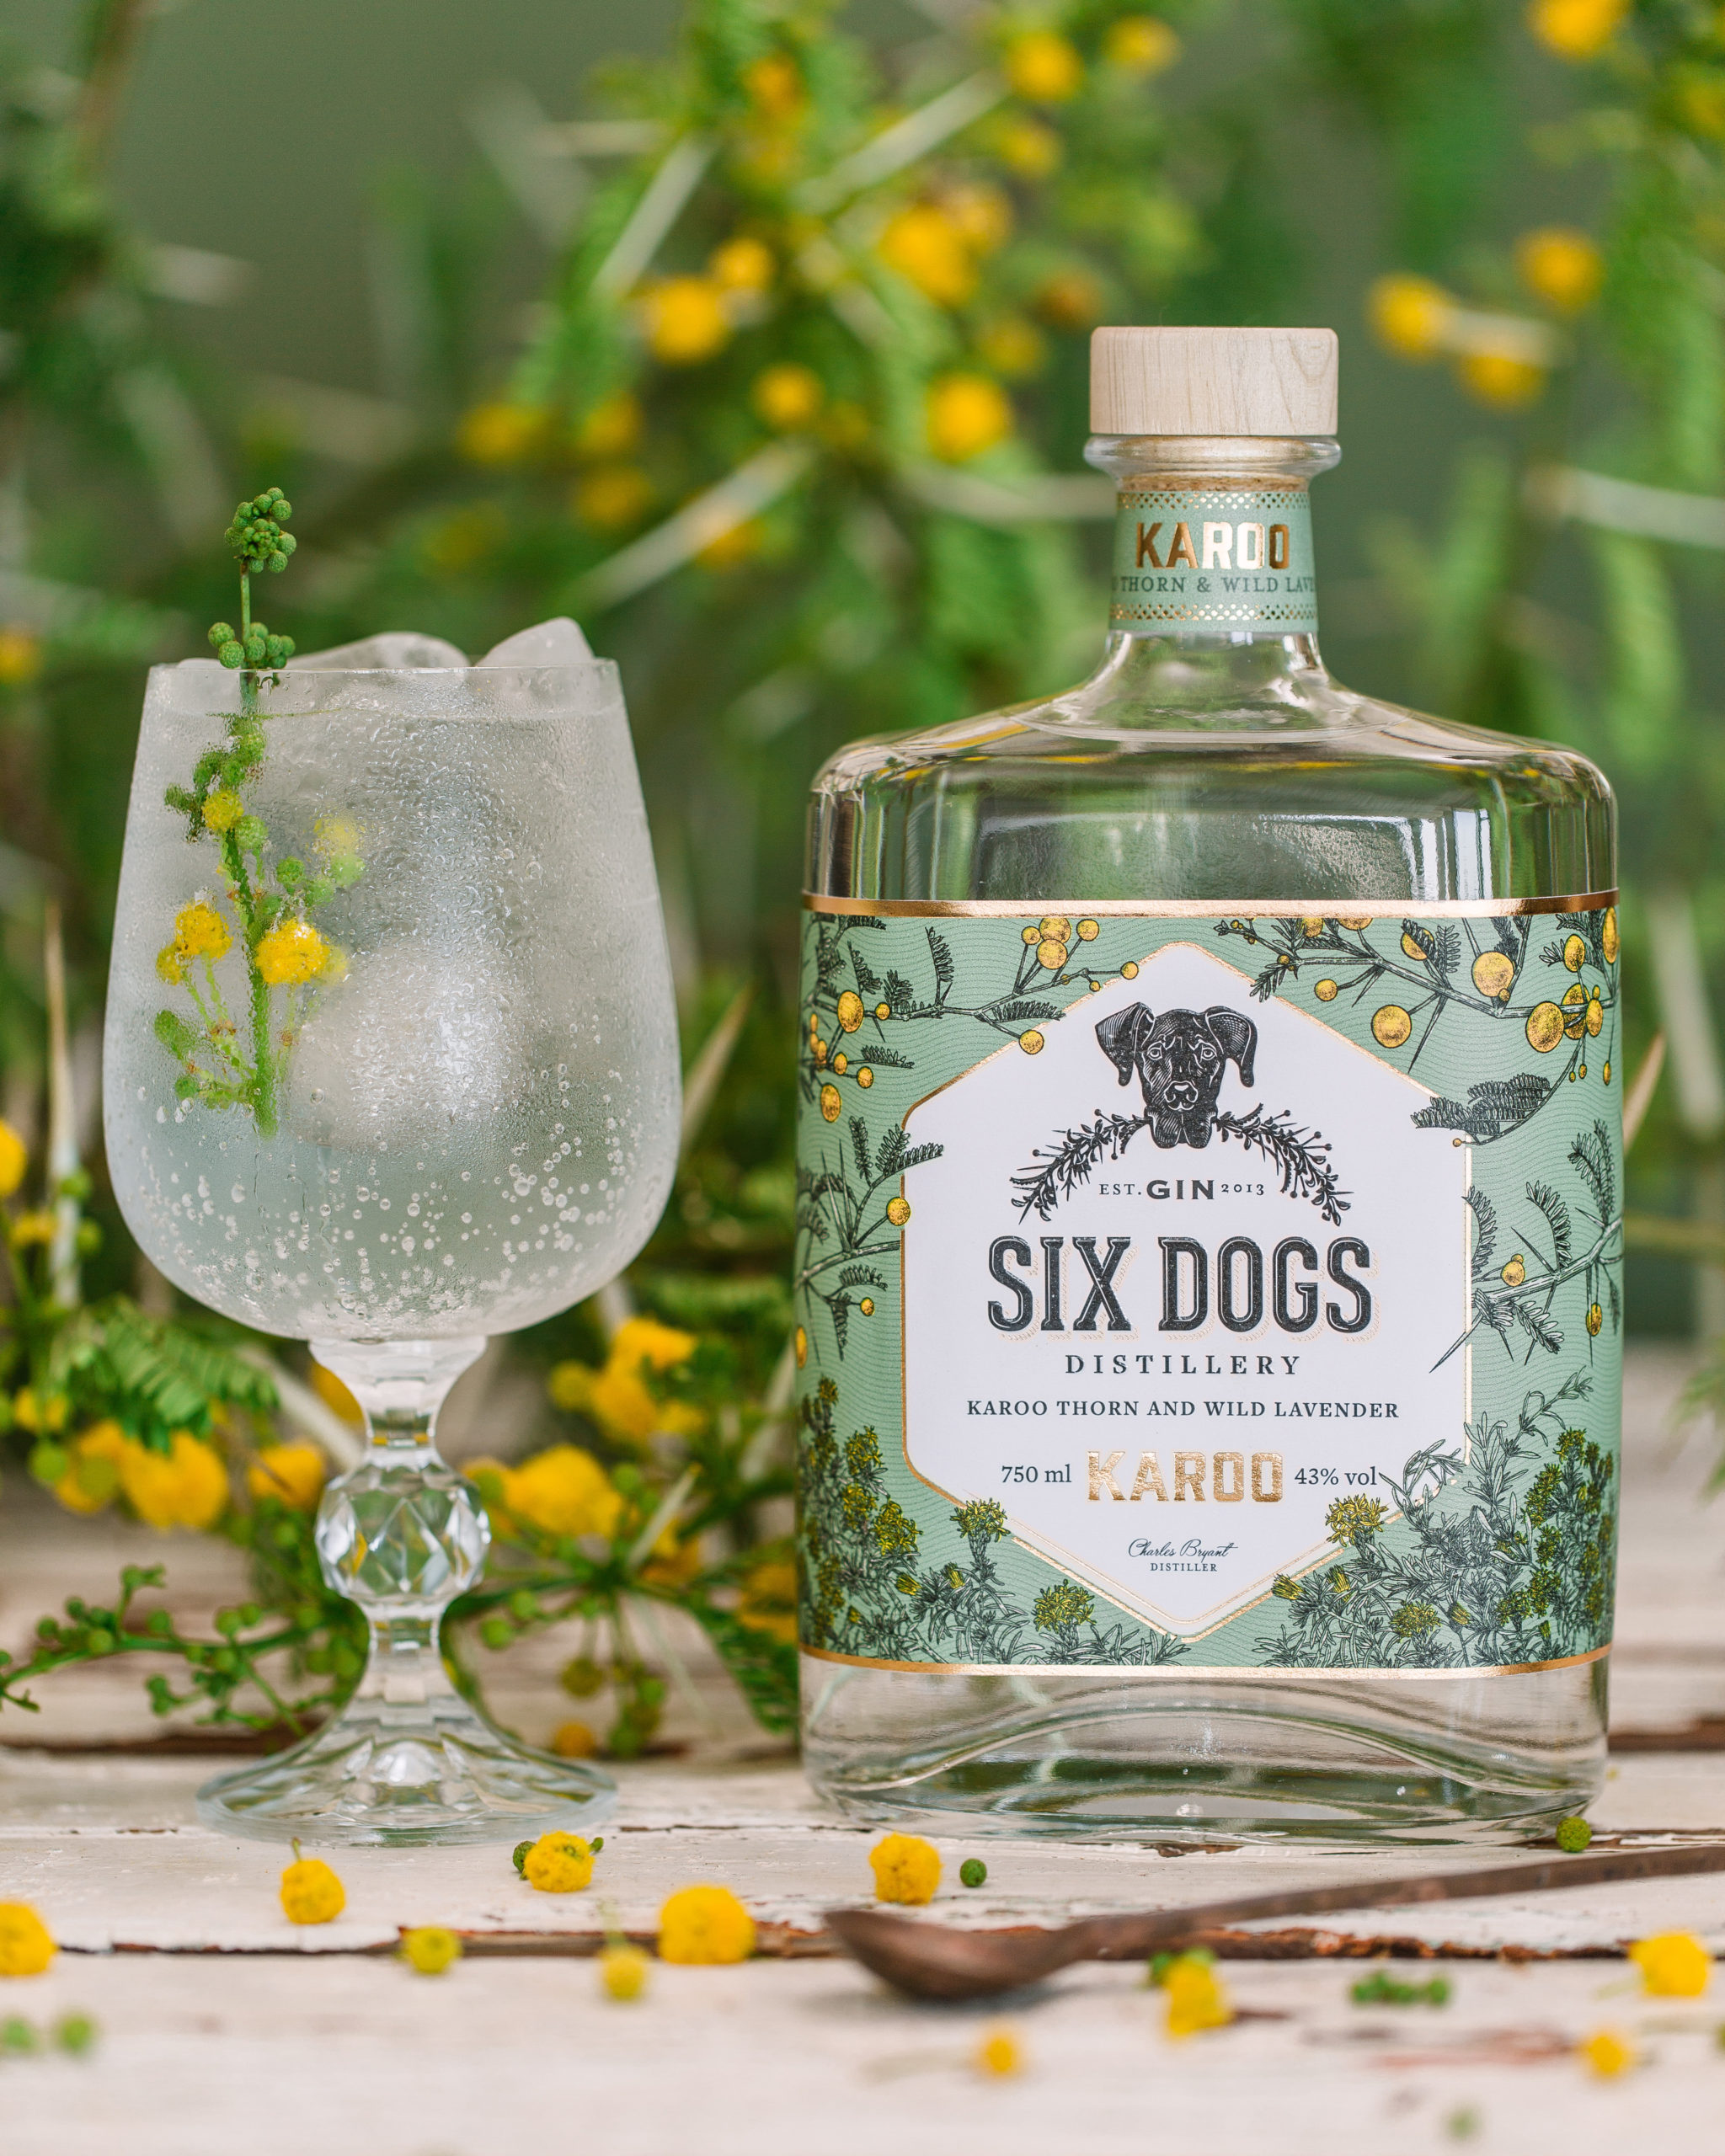 Six Dogs Distillery - Corporate Gin Tasting